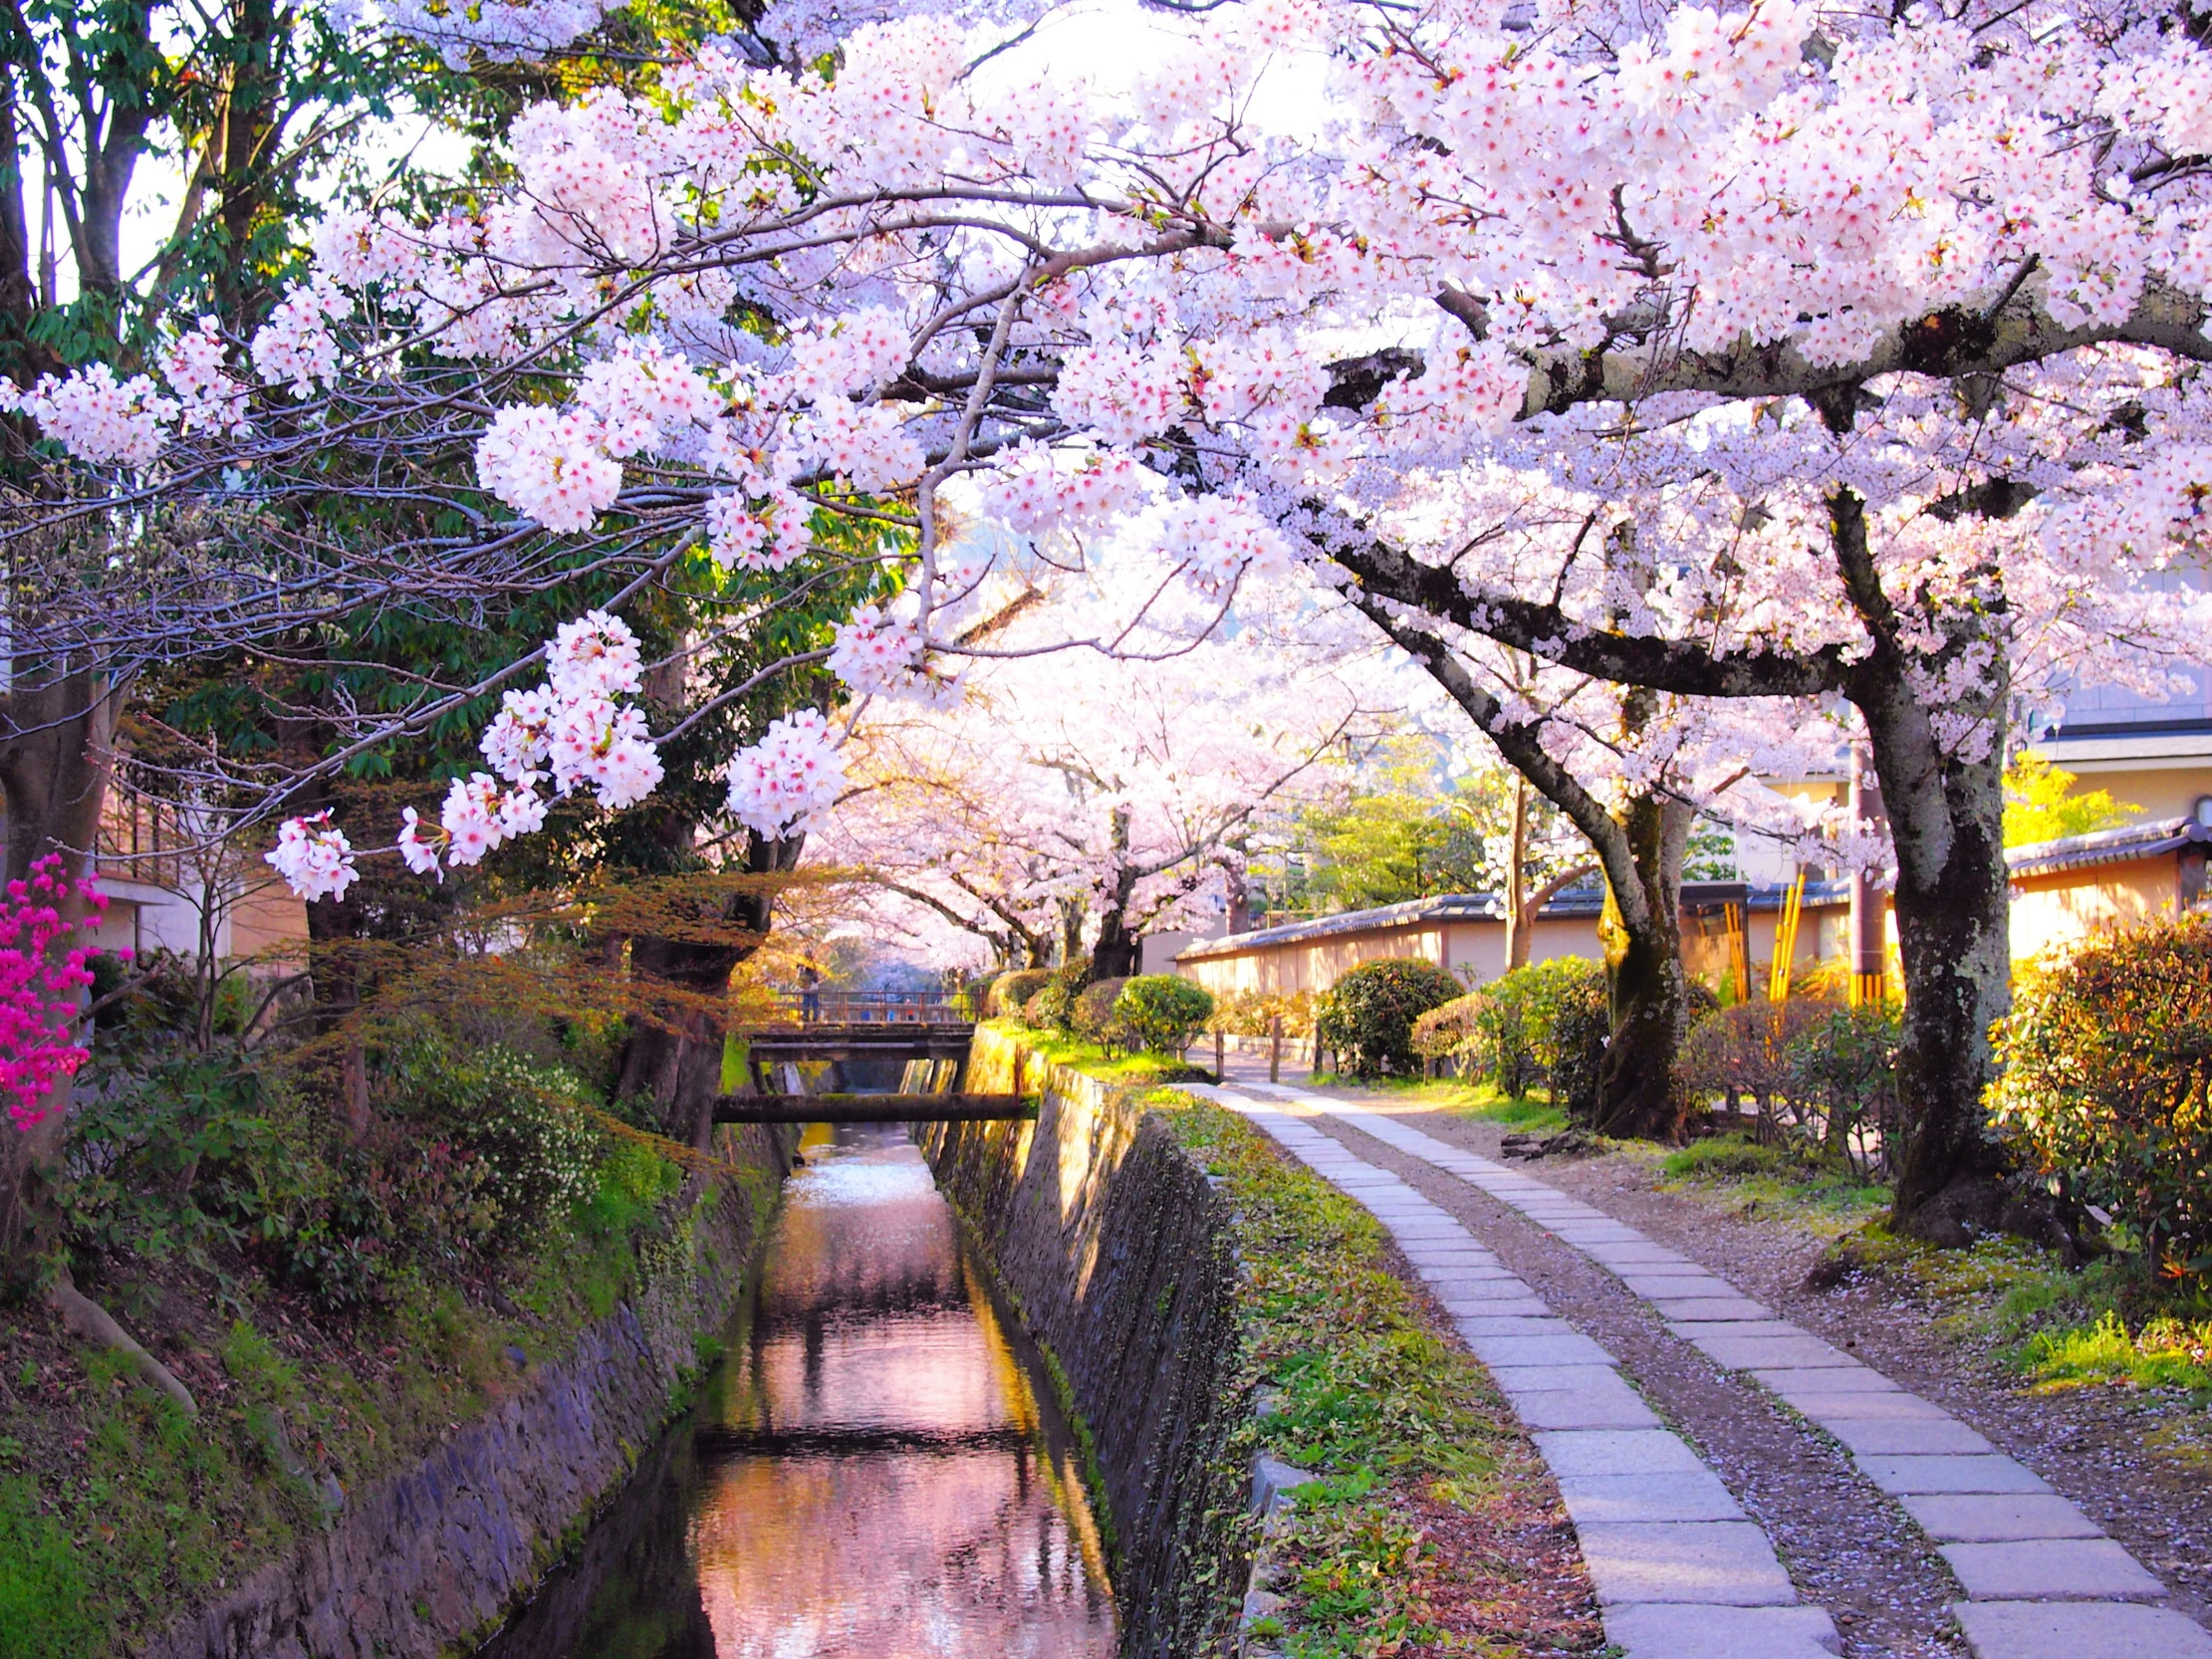 Tokyo Geisha Girl Wallpaper Background The 20 Greatest Destinations For Flowers